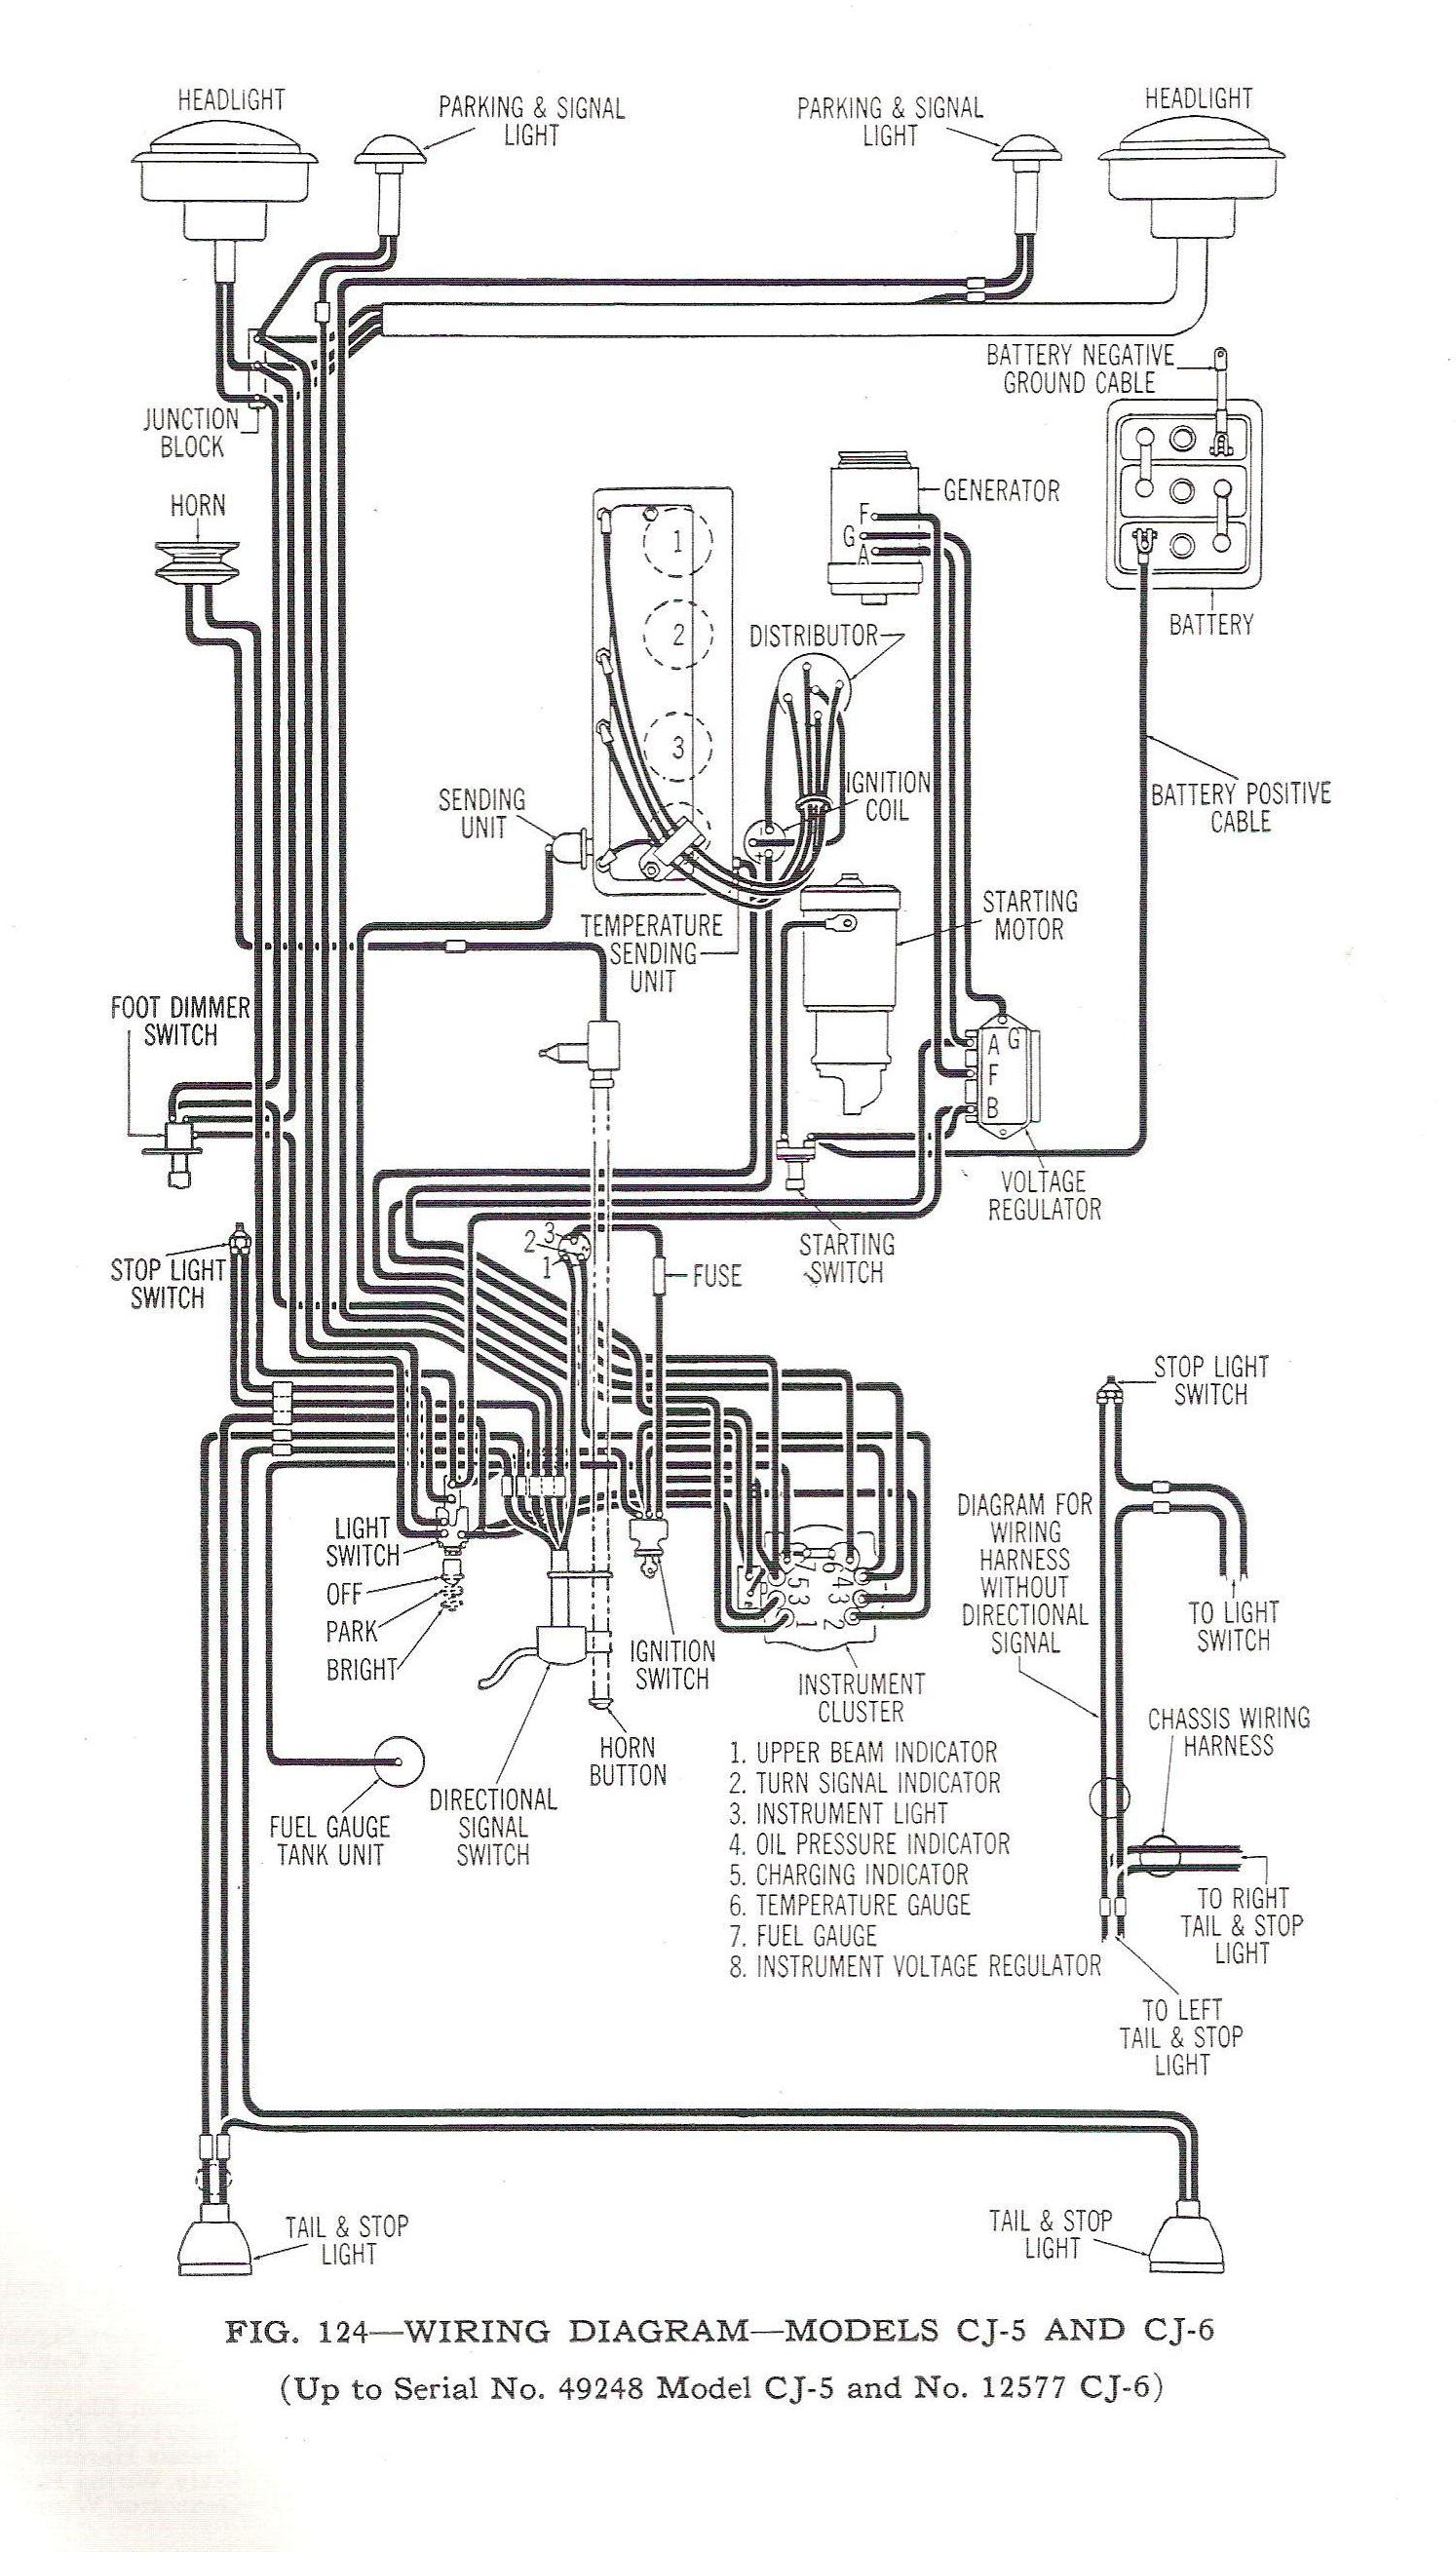 Cj3a Wiring Harness - Gas Furnace Wiring Diagram Force for Wiring Diagram  Schematics | Willys Jeep Cj3a Wiring Diagram |  | Wiring Diagram Schematics